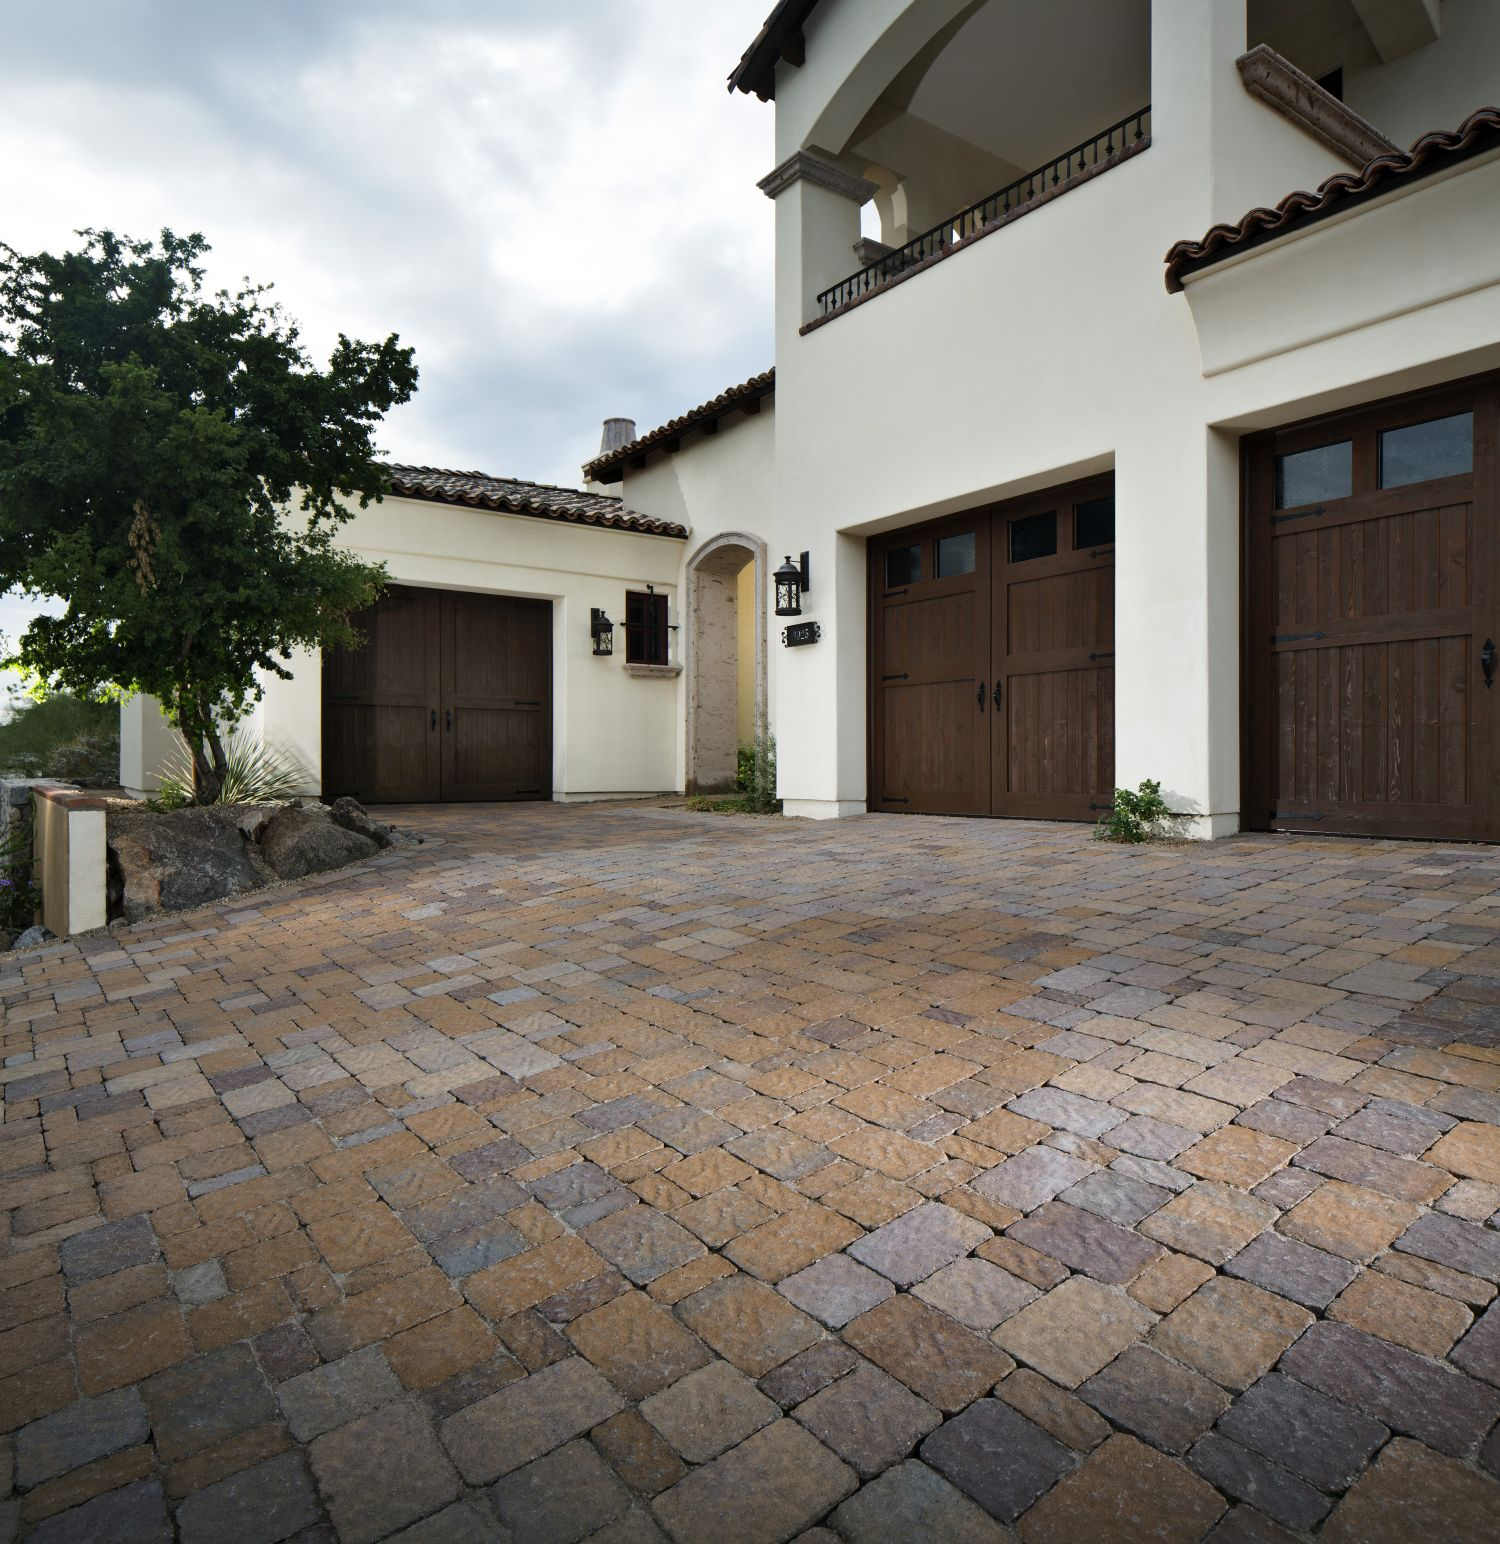 How to Remove Tire Marks from Concrete Paver Driveway Guide